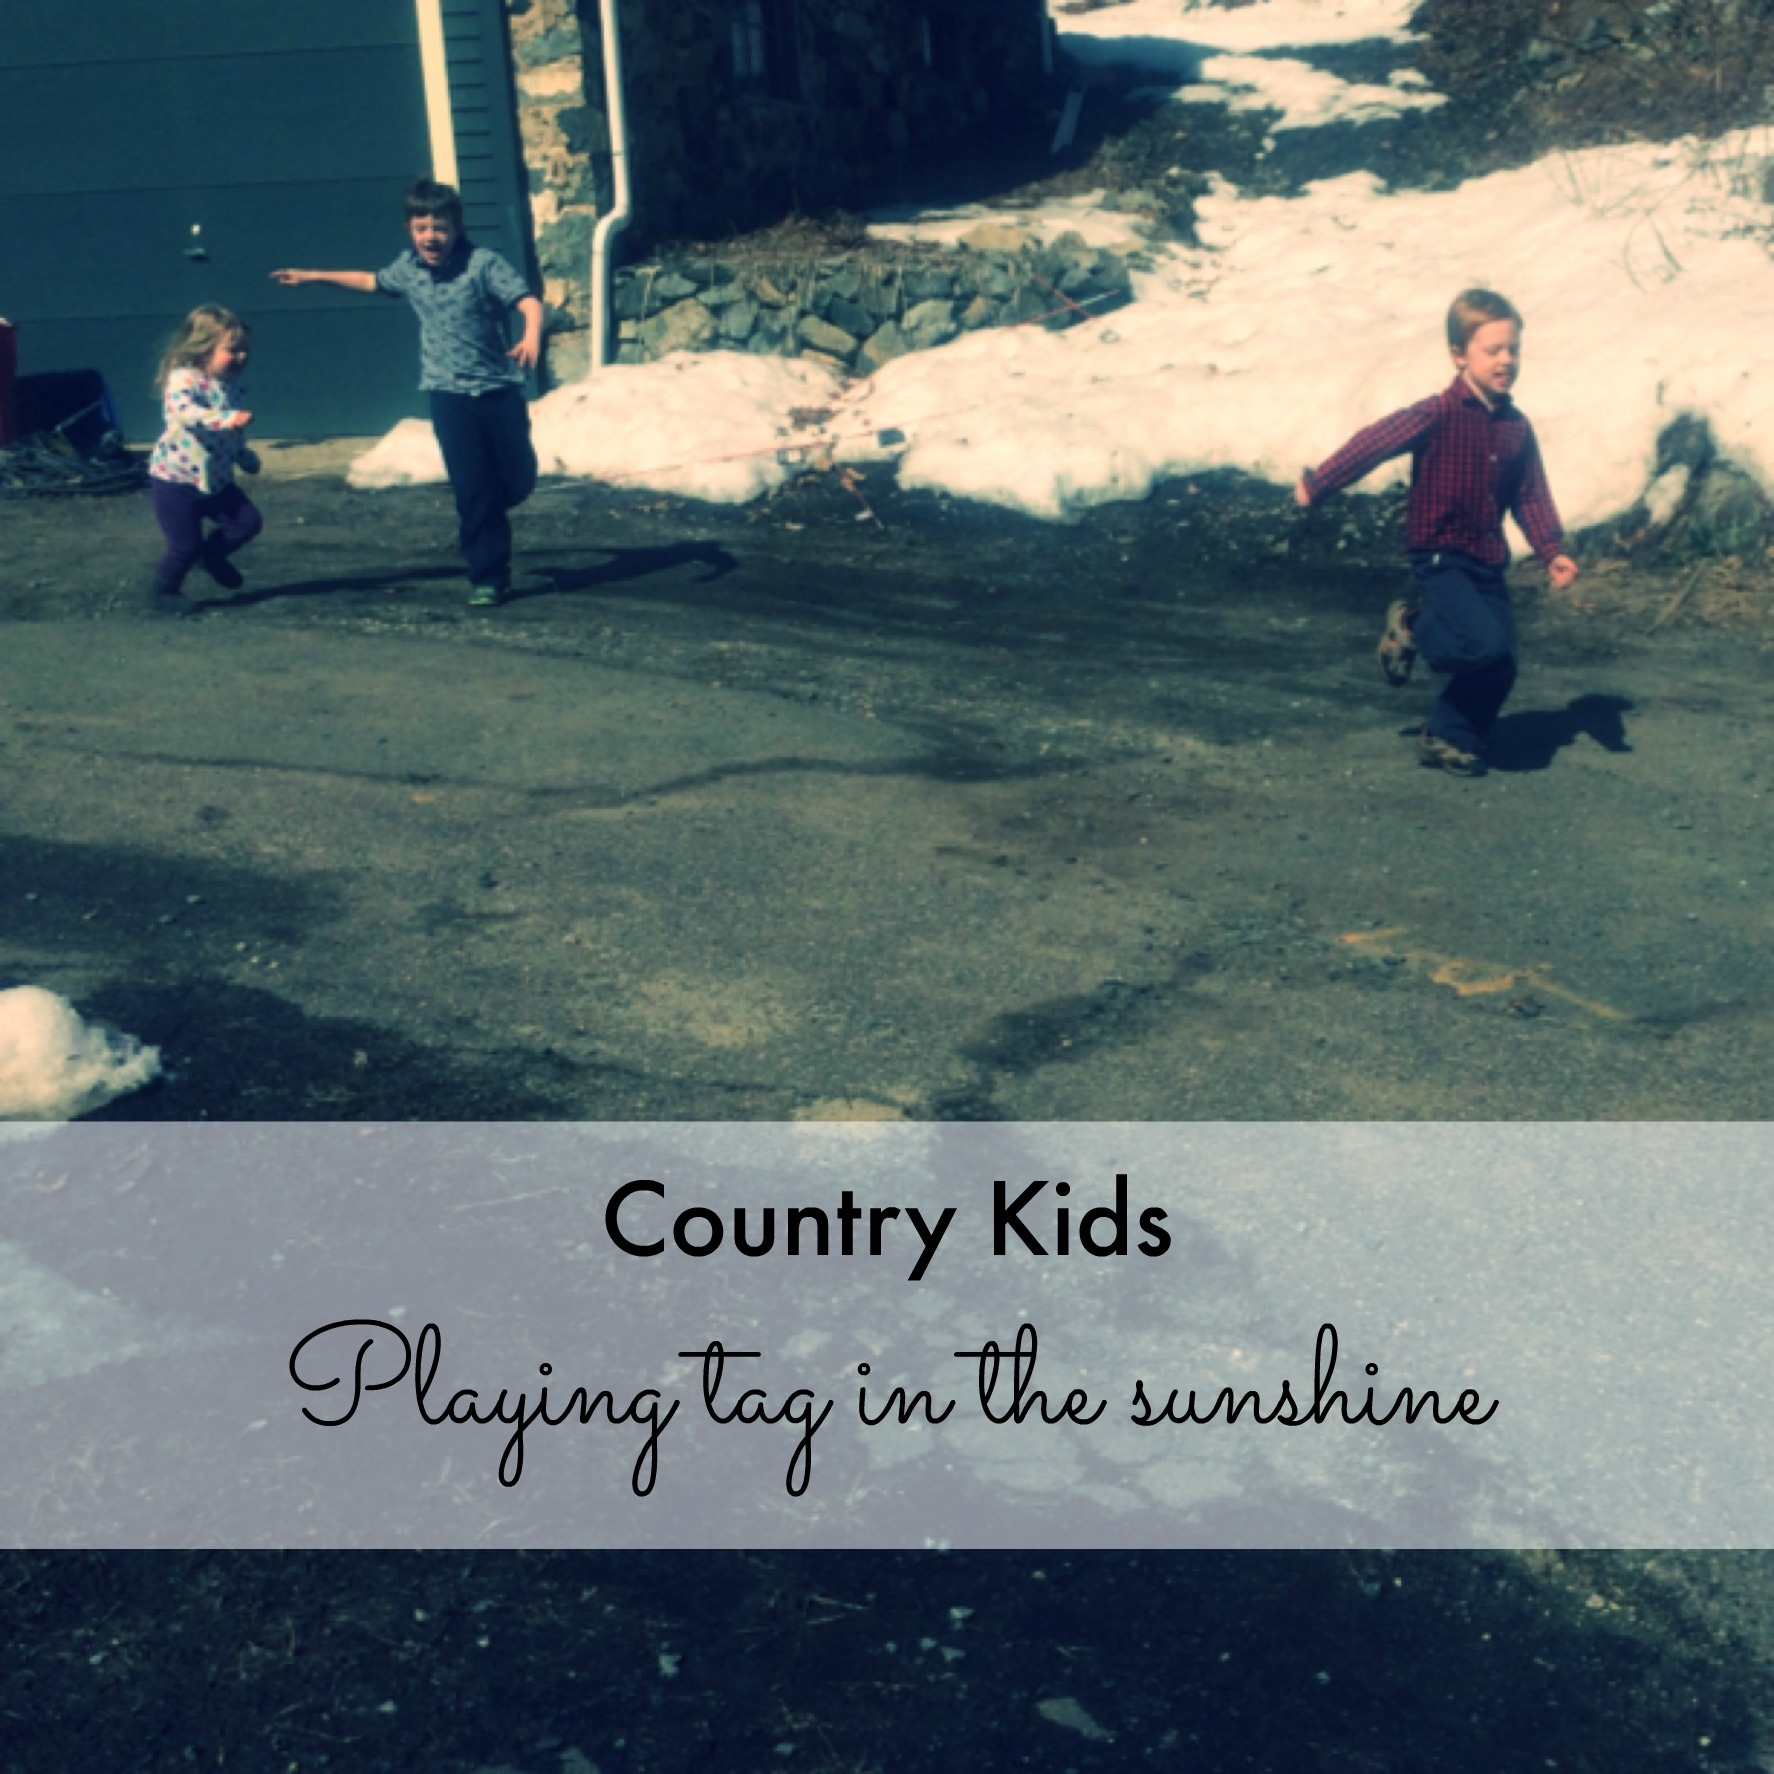 Country Kids: playing tag in the sunshine